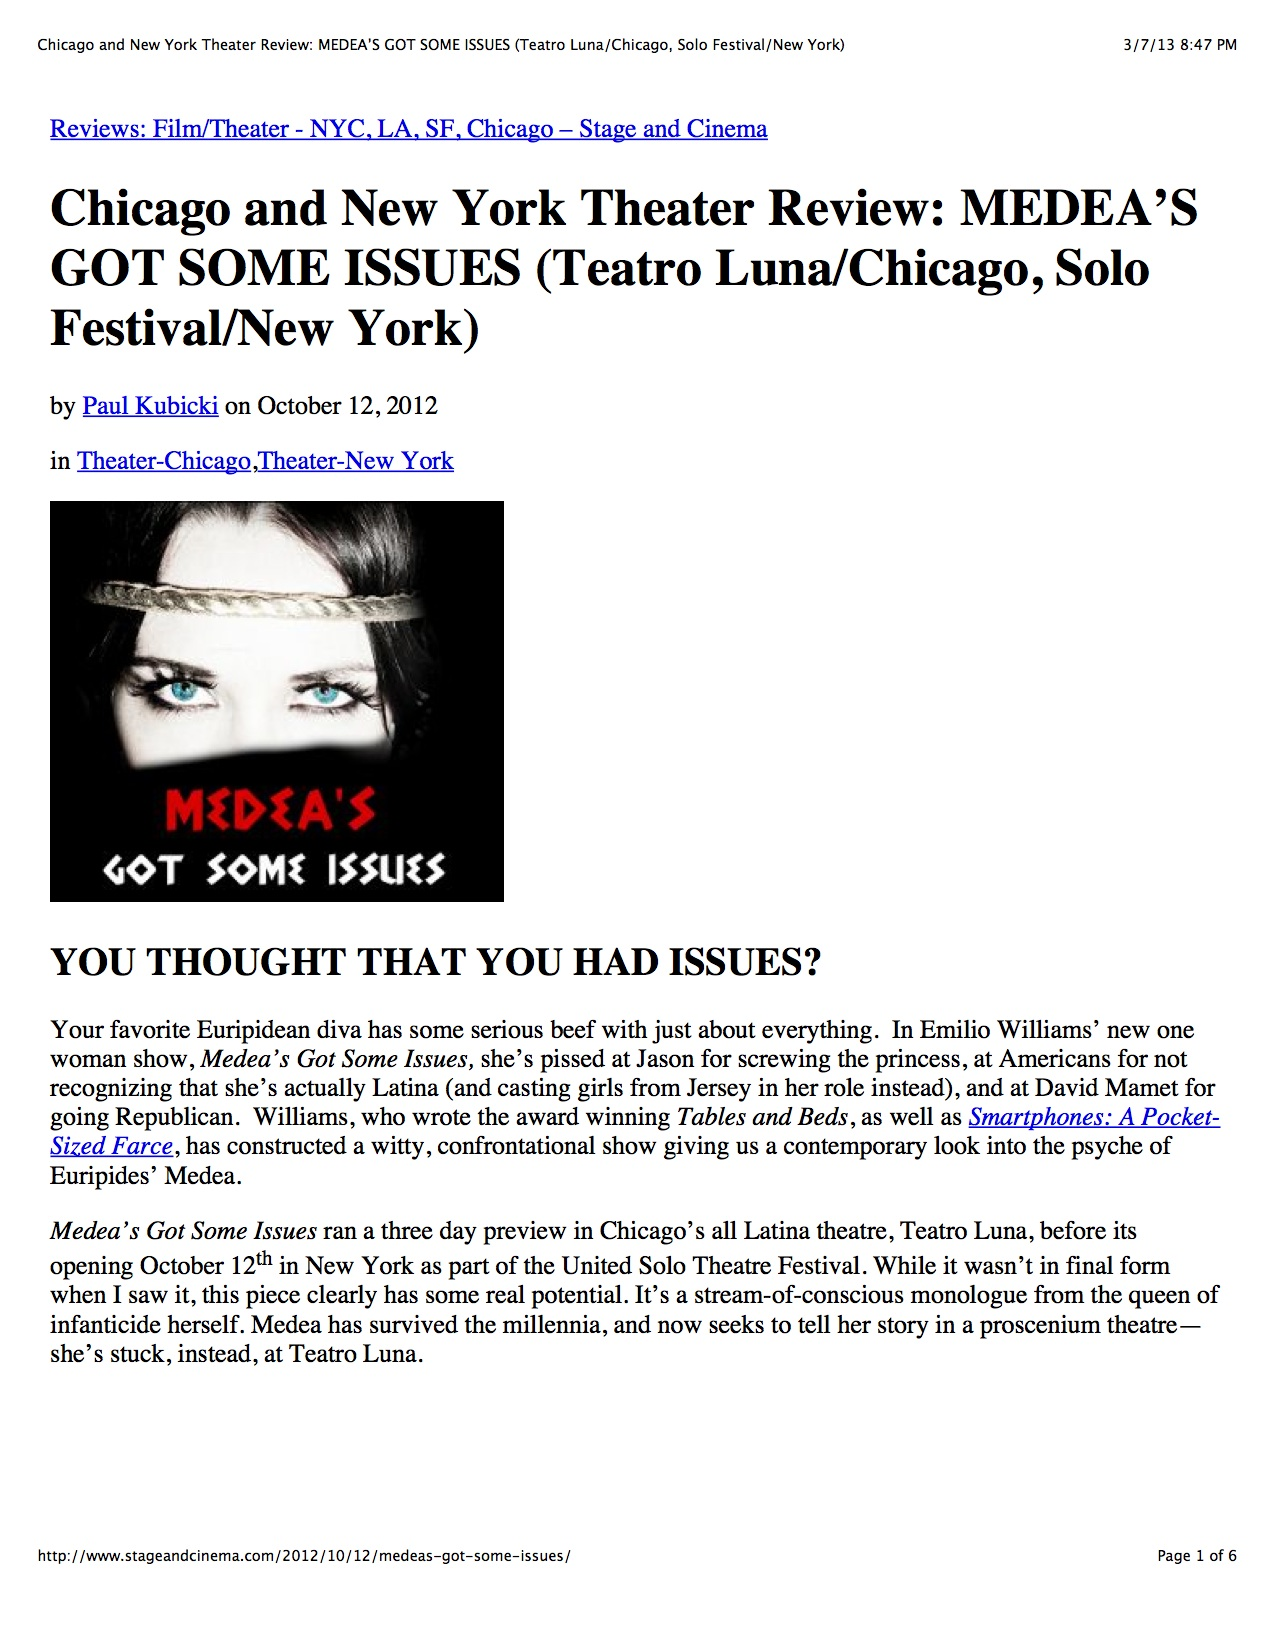 Chicago+and+New+York+Theater+Review:+MEDEA'S+GOT+SOME+ISSUES+(Teatro+Luna:Chicag